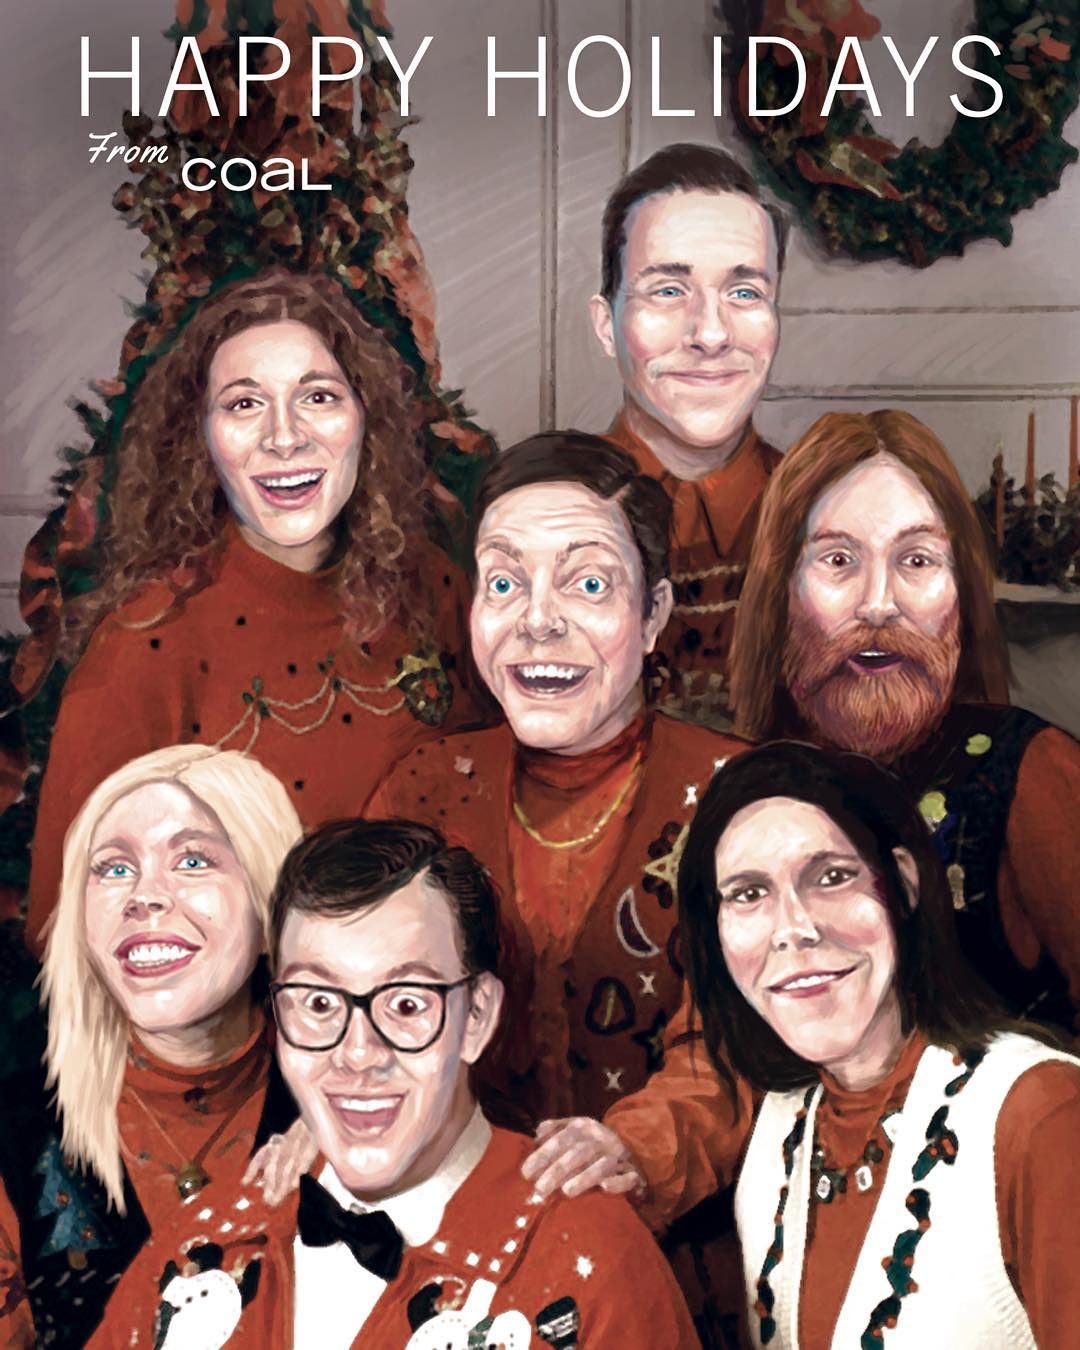 Happy Holidays from all of us at #coalheadwear! Our visual designer @mat_5avage is a holiday card wizard!